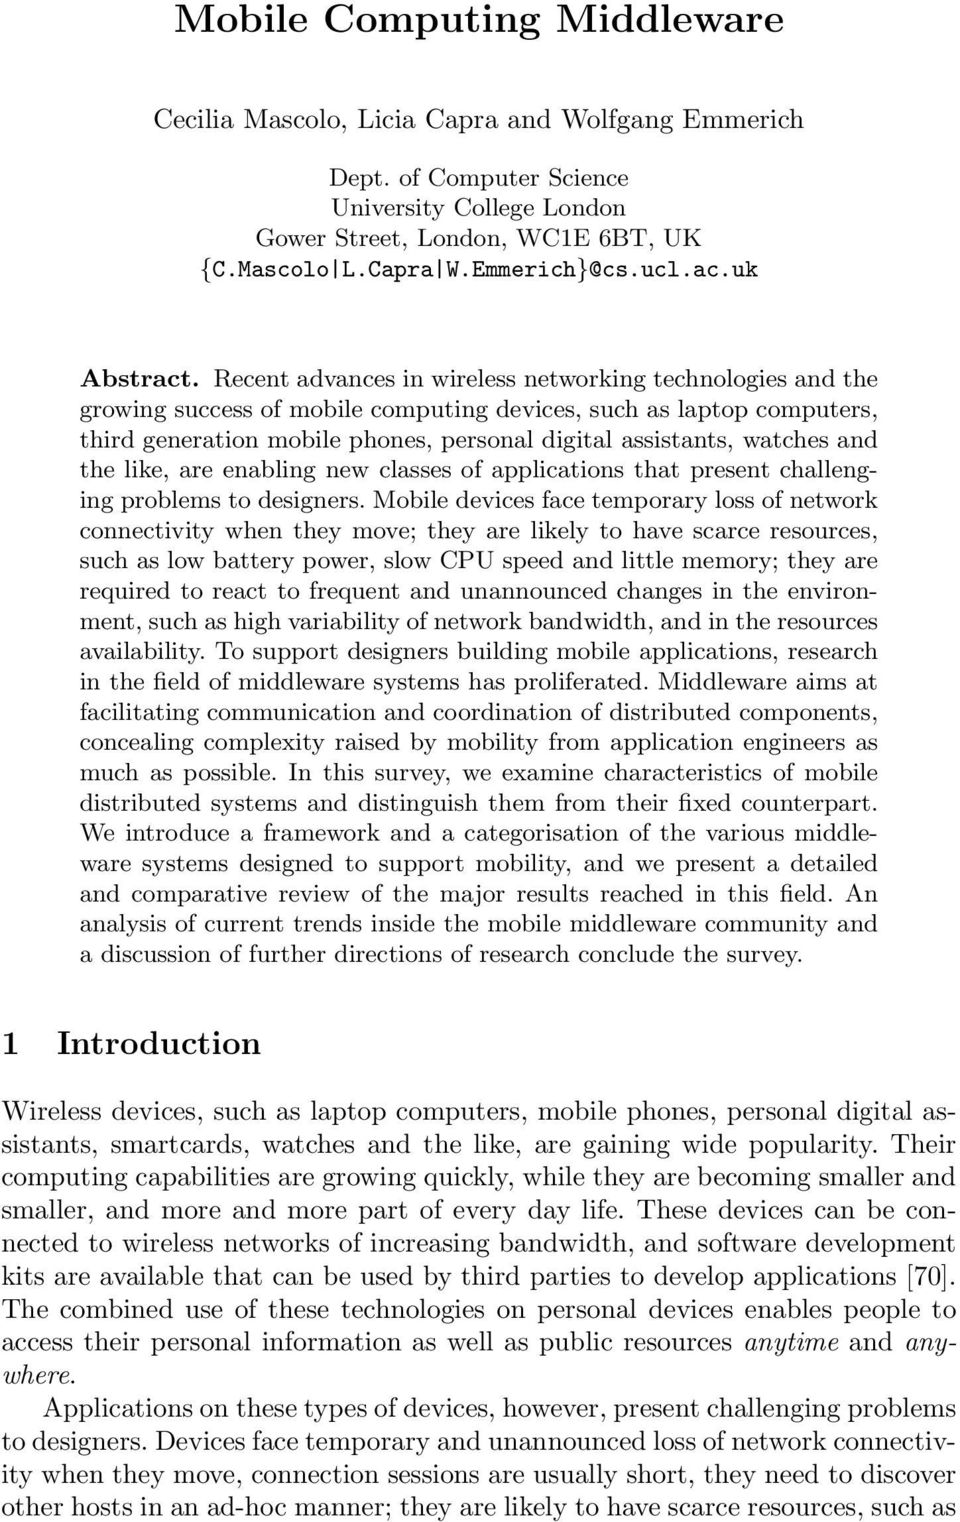 Recent advances in wireless networking technologies and the growing success of mobile computing devices, such as laptop computers, third generation mobile phones, personal digital assistants, watches